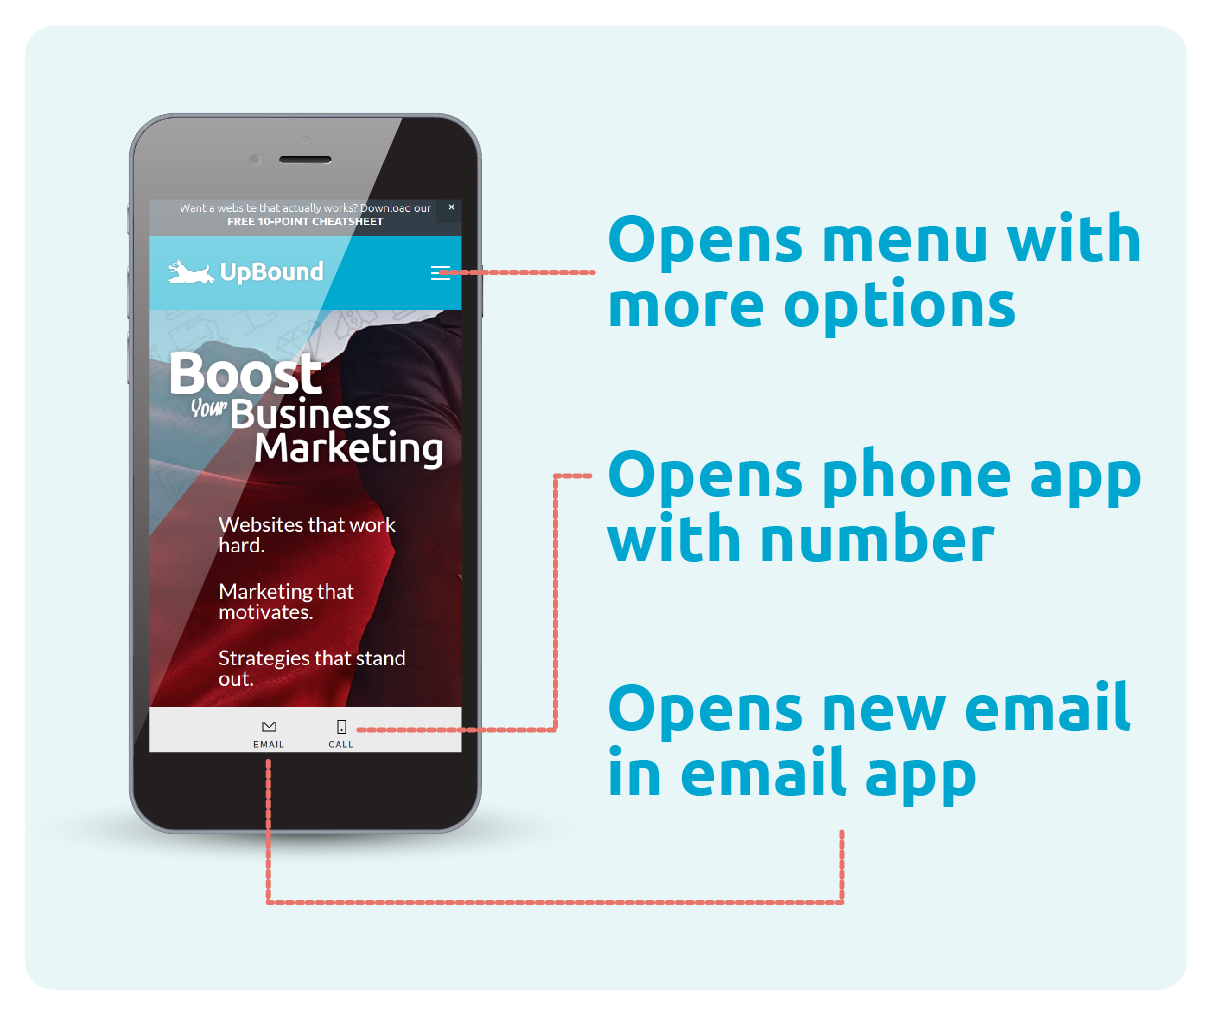 The UpBound website is a great example of how a mobile site can make it easy for a small business to connect with customers. | UpBound Website Design & Digital Marketing